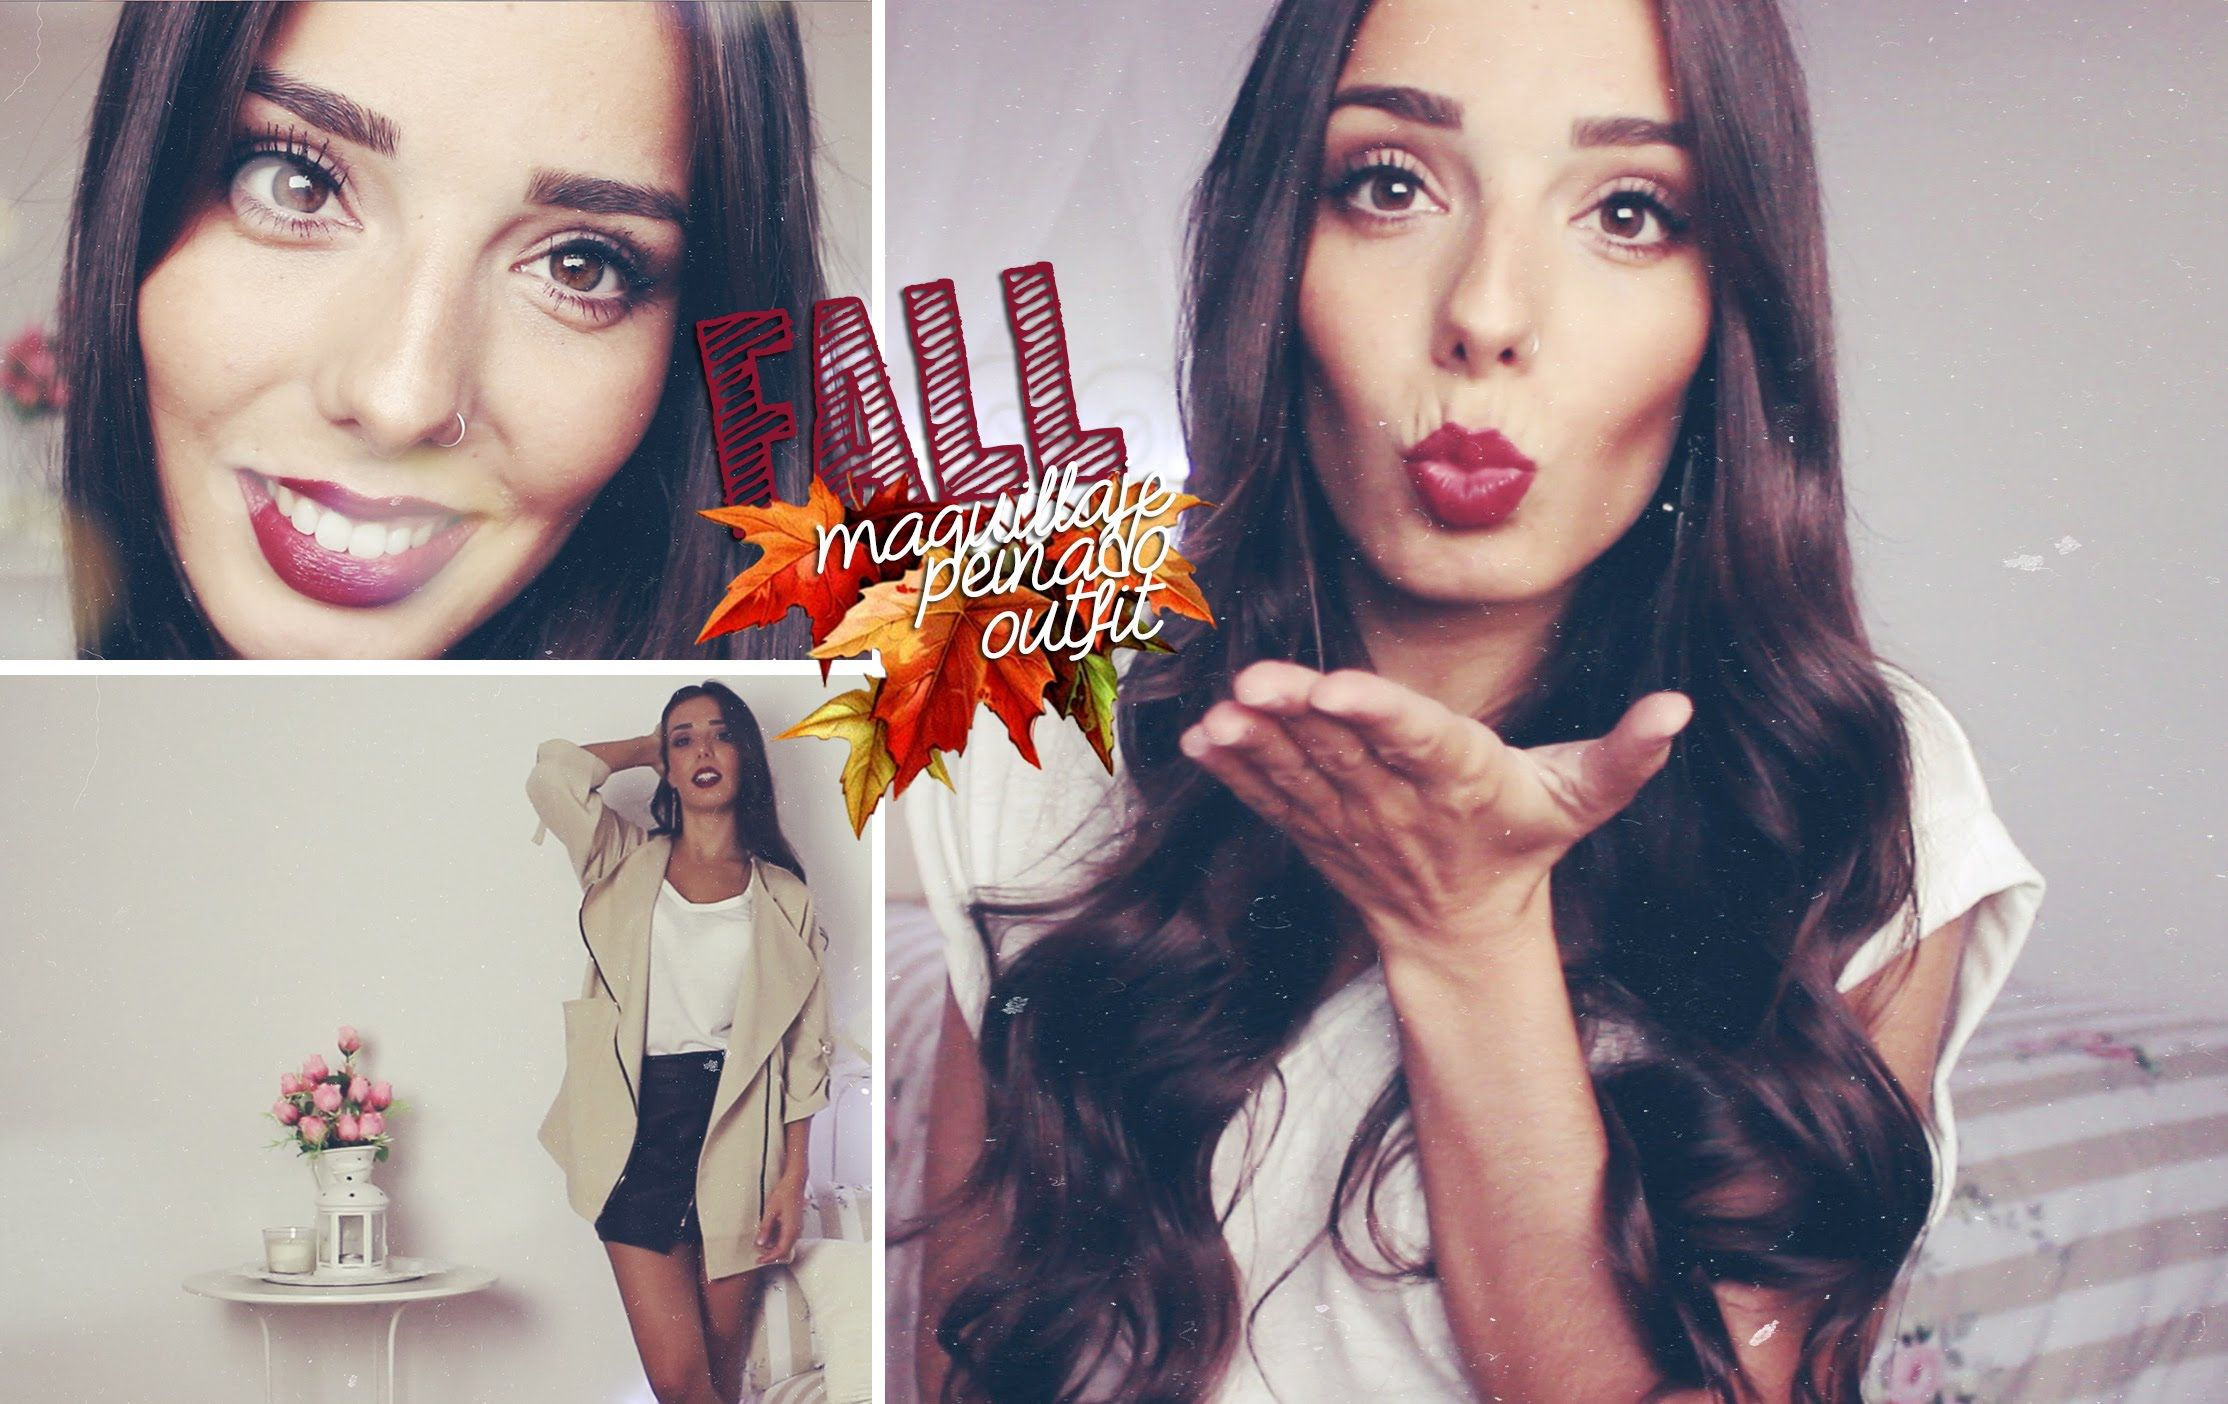 Fall ♡ Maquillaje, Peinado y Outfit Otoñal   A Little Too Often